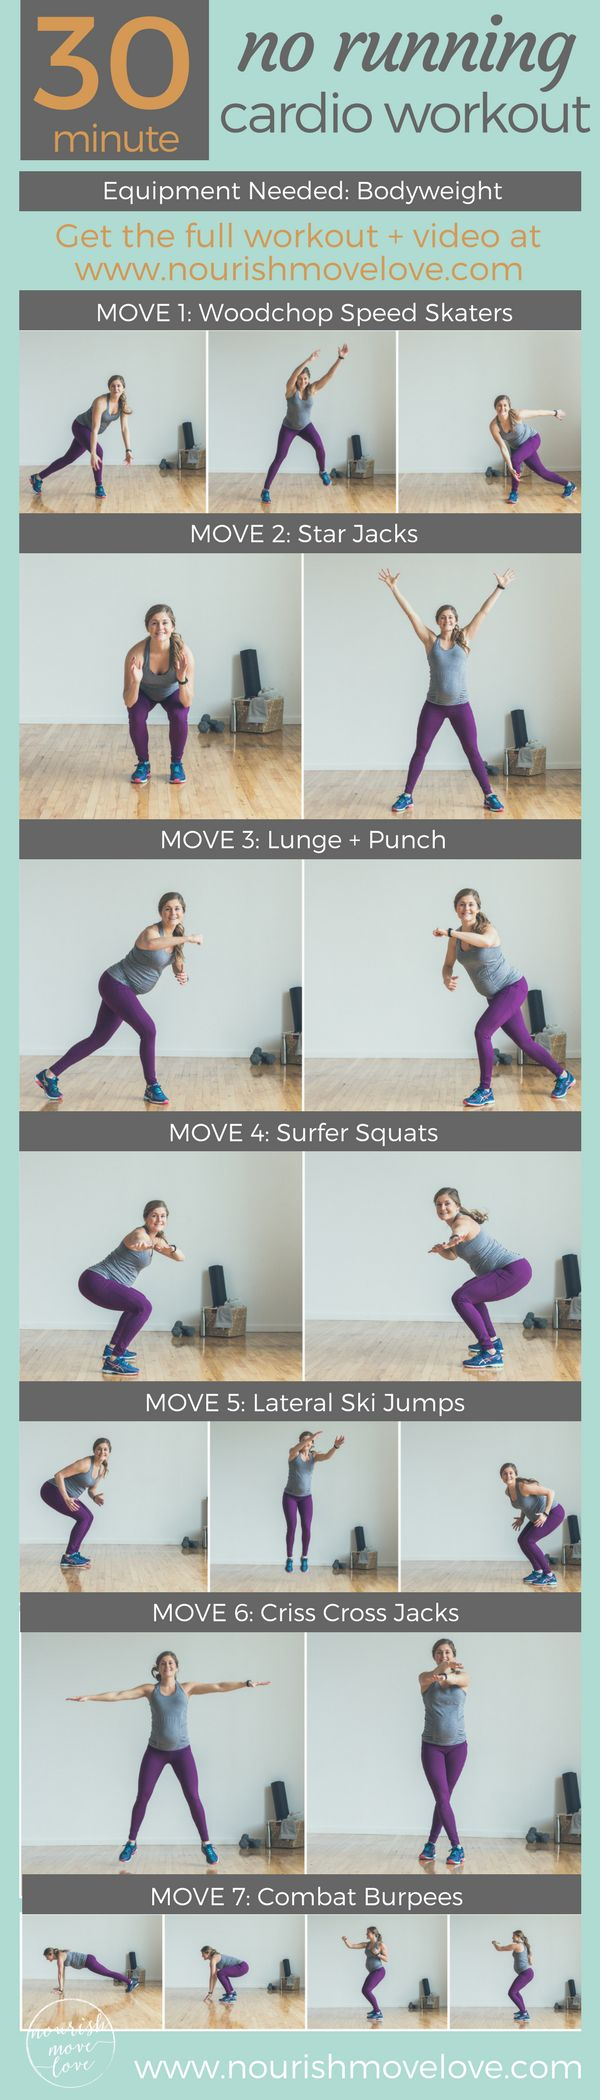 30-Minute, No Running At-Home Cardio Workout. 7 bodyweight exercises to tighten and tone your troublespots!   www.nourishmovelove.com